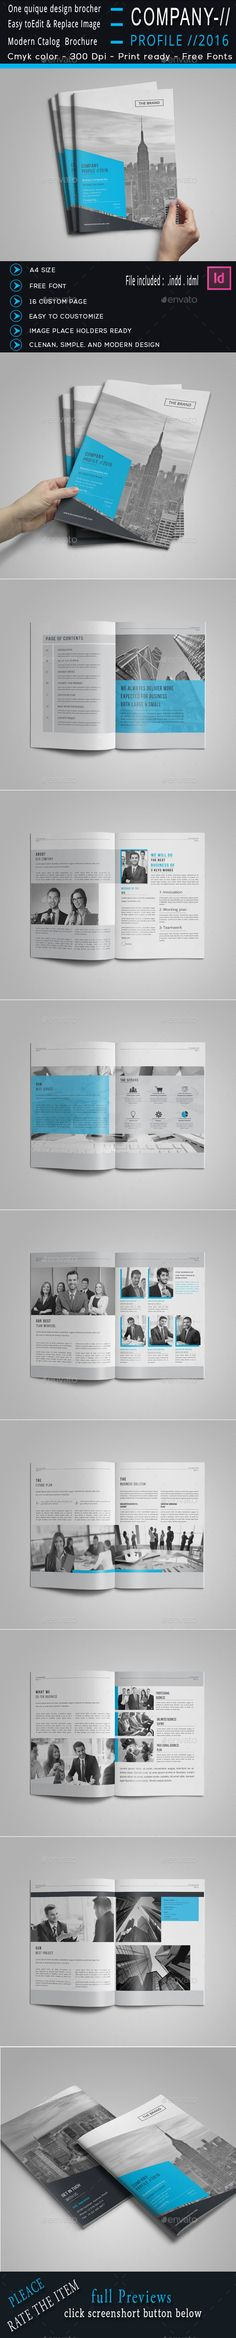 Company Profile Company profile, Brochure template and Brochures - company profile templates